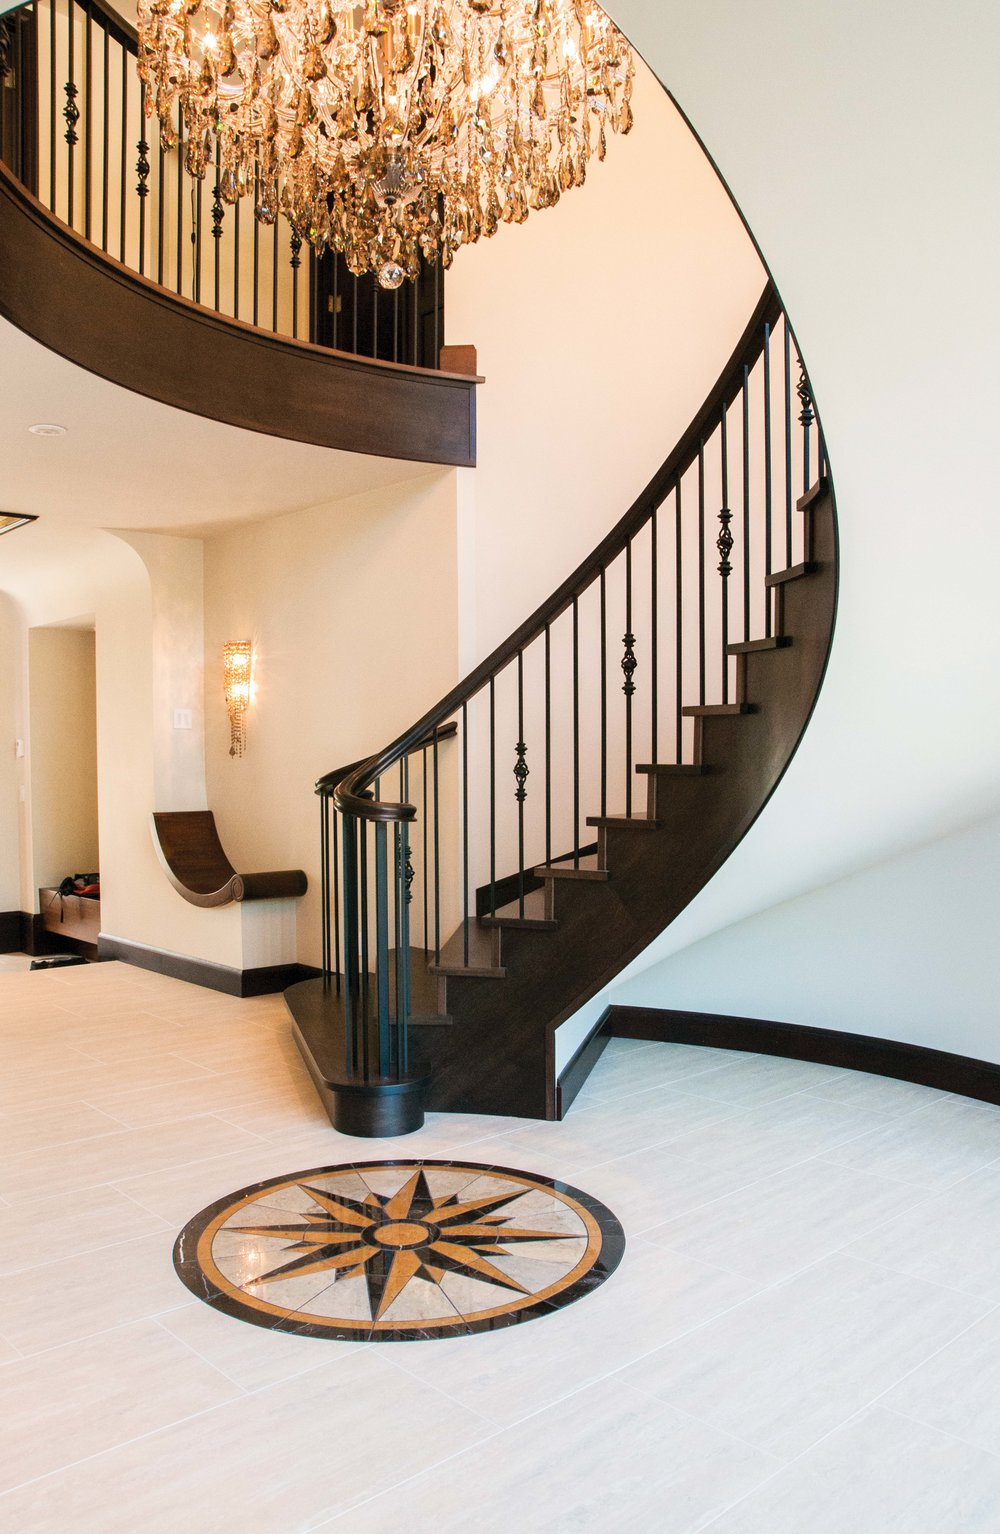 Flowing curves of entry stairs, bench seat, and landing, along with inlaid floor medallion, work together to form a graceful composition that encompasses the brilliant Schonbek chandelier.